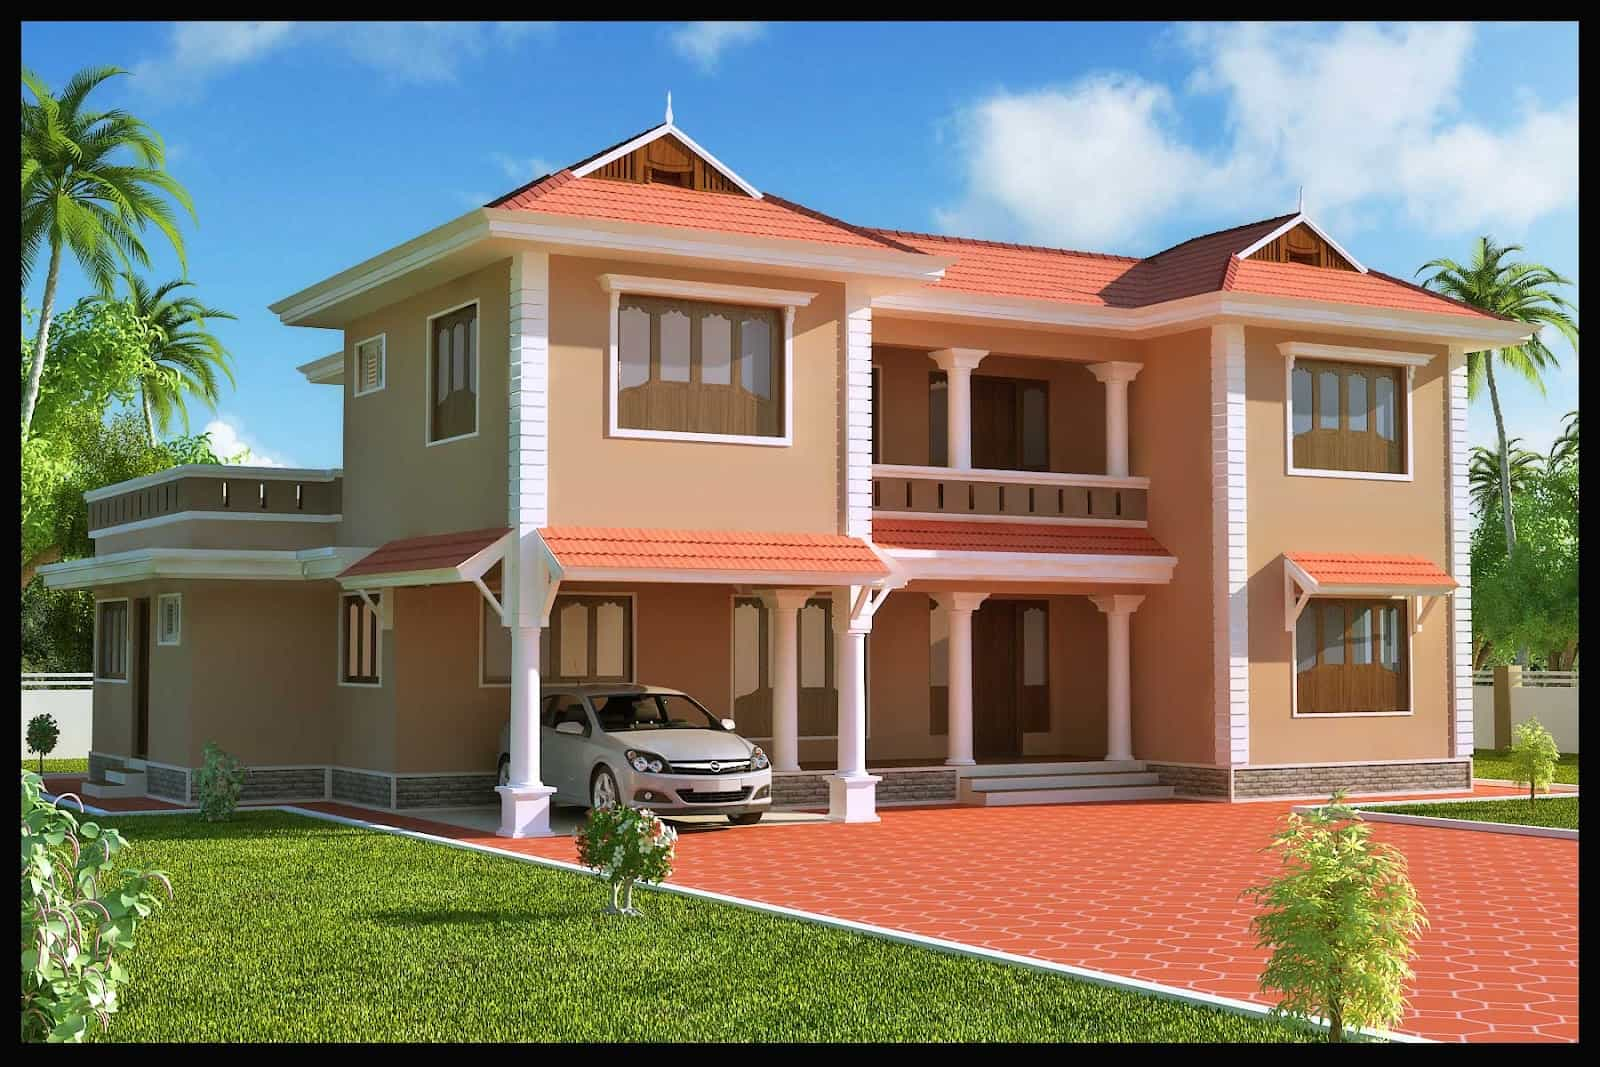 Indian Home Design: Duplex Kerala Home Design At 2618 Sq.ft